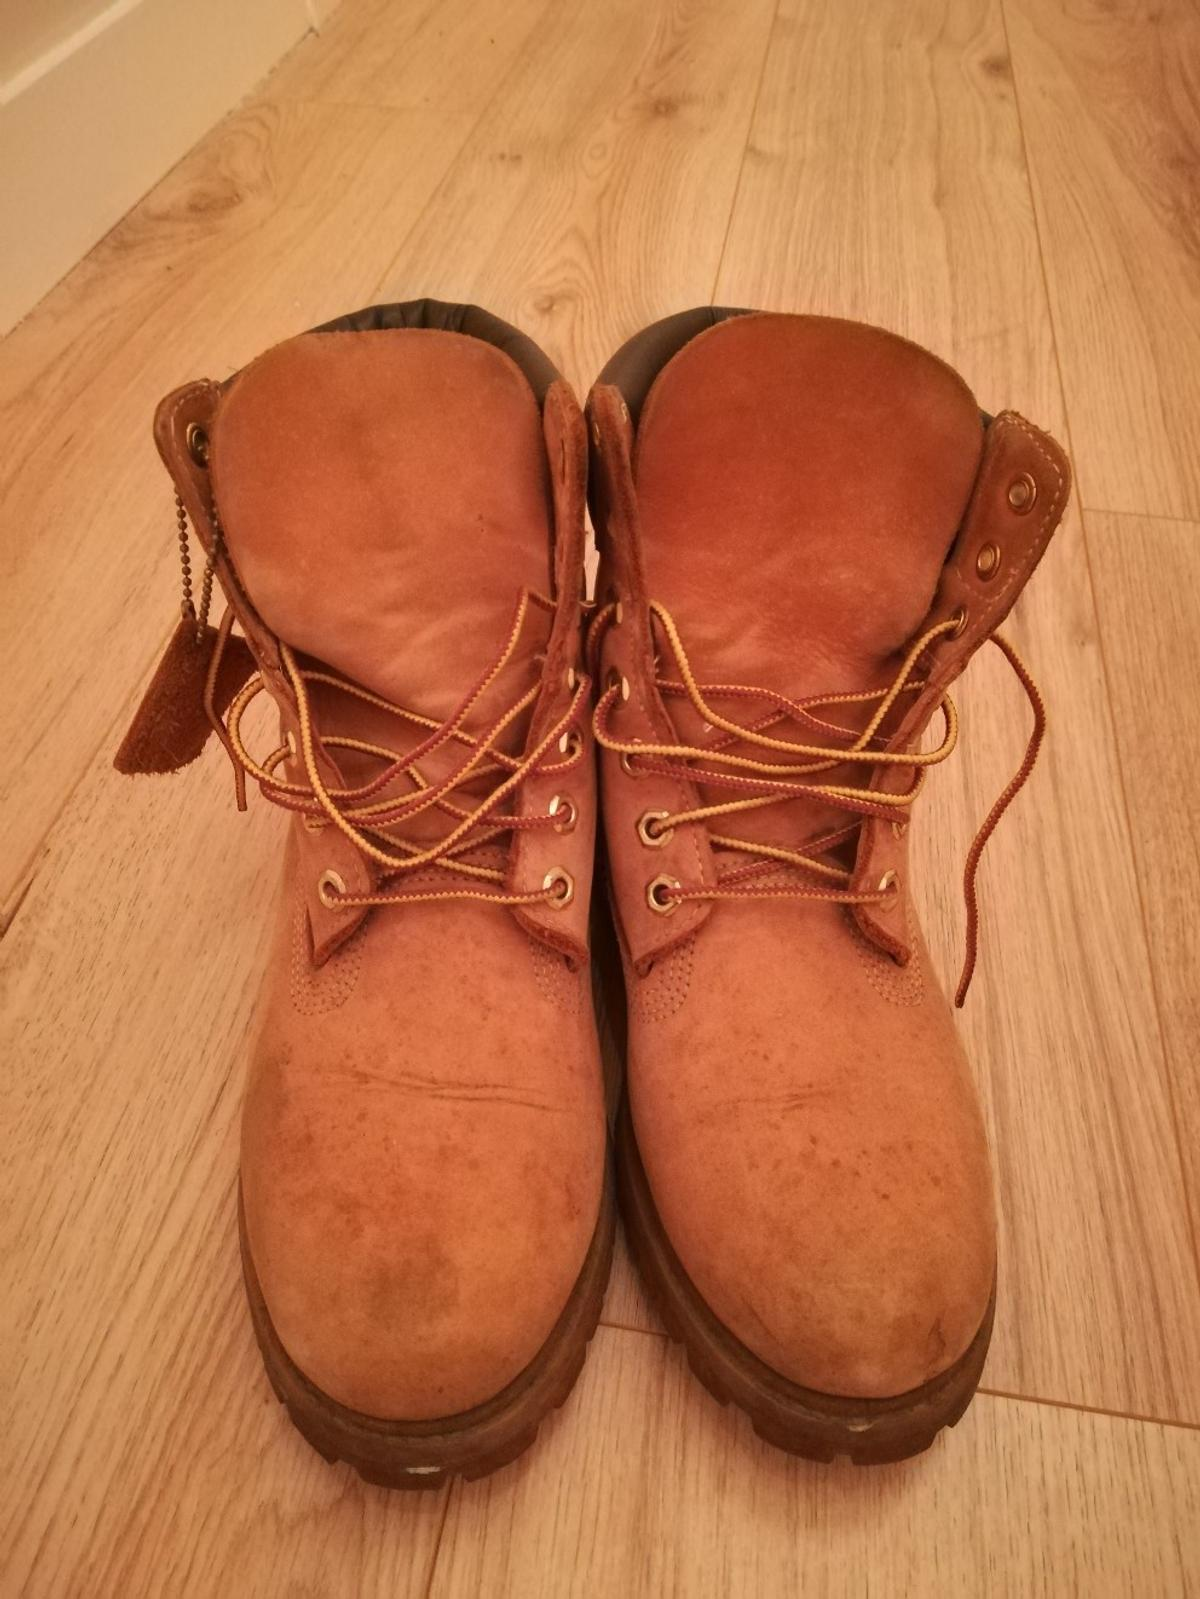 Used Men's Size 7 Original Timberland boots